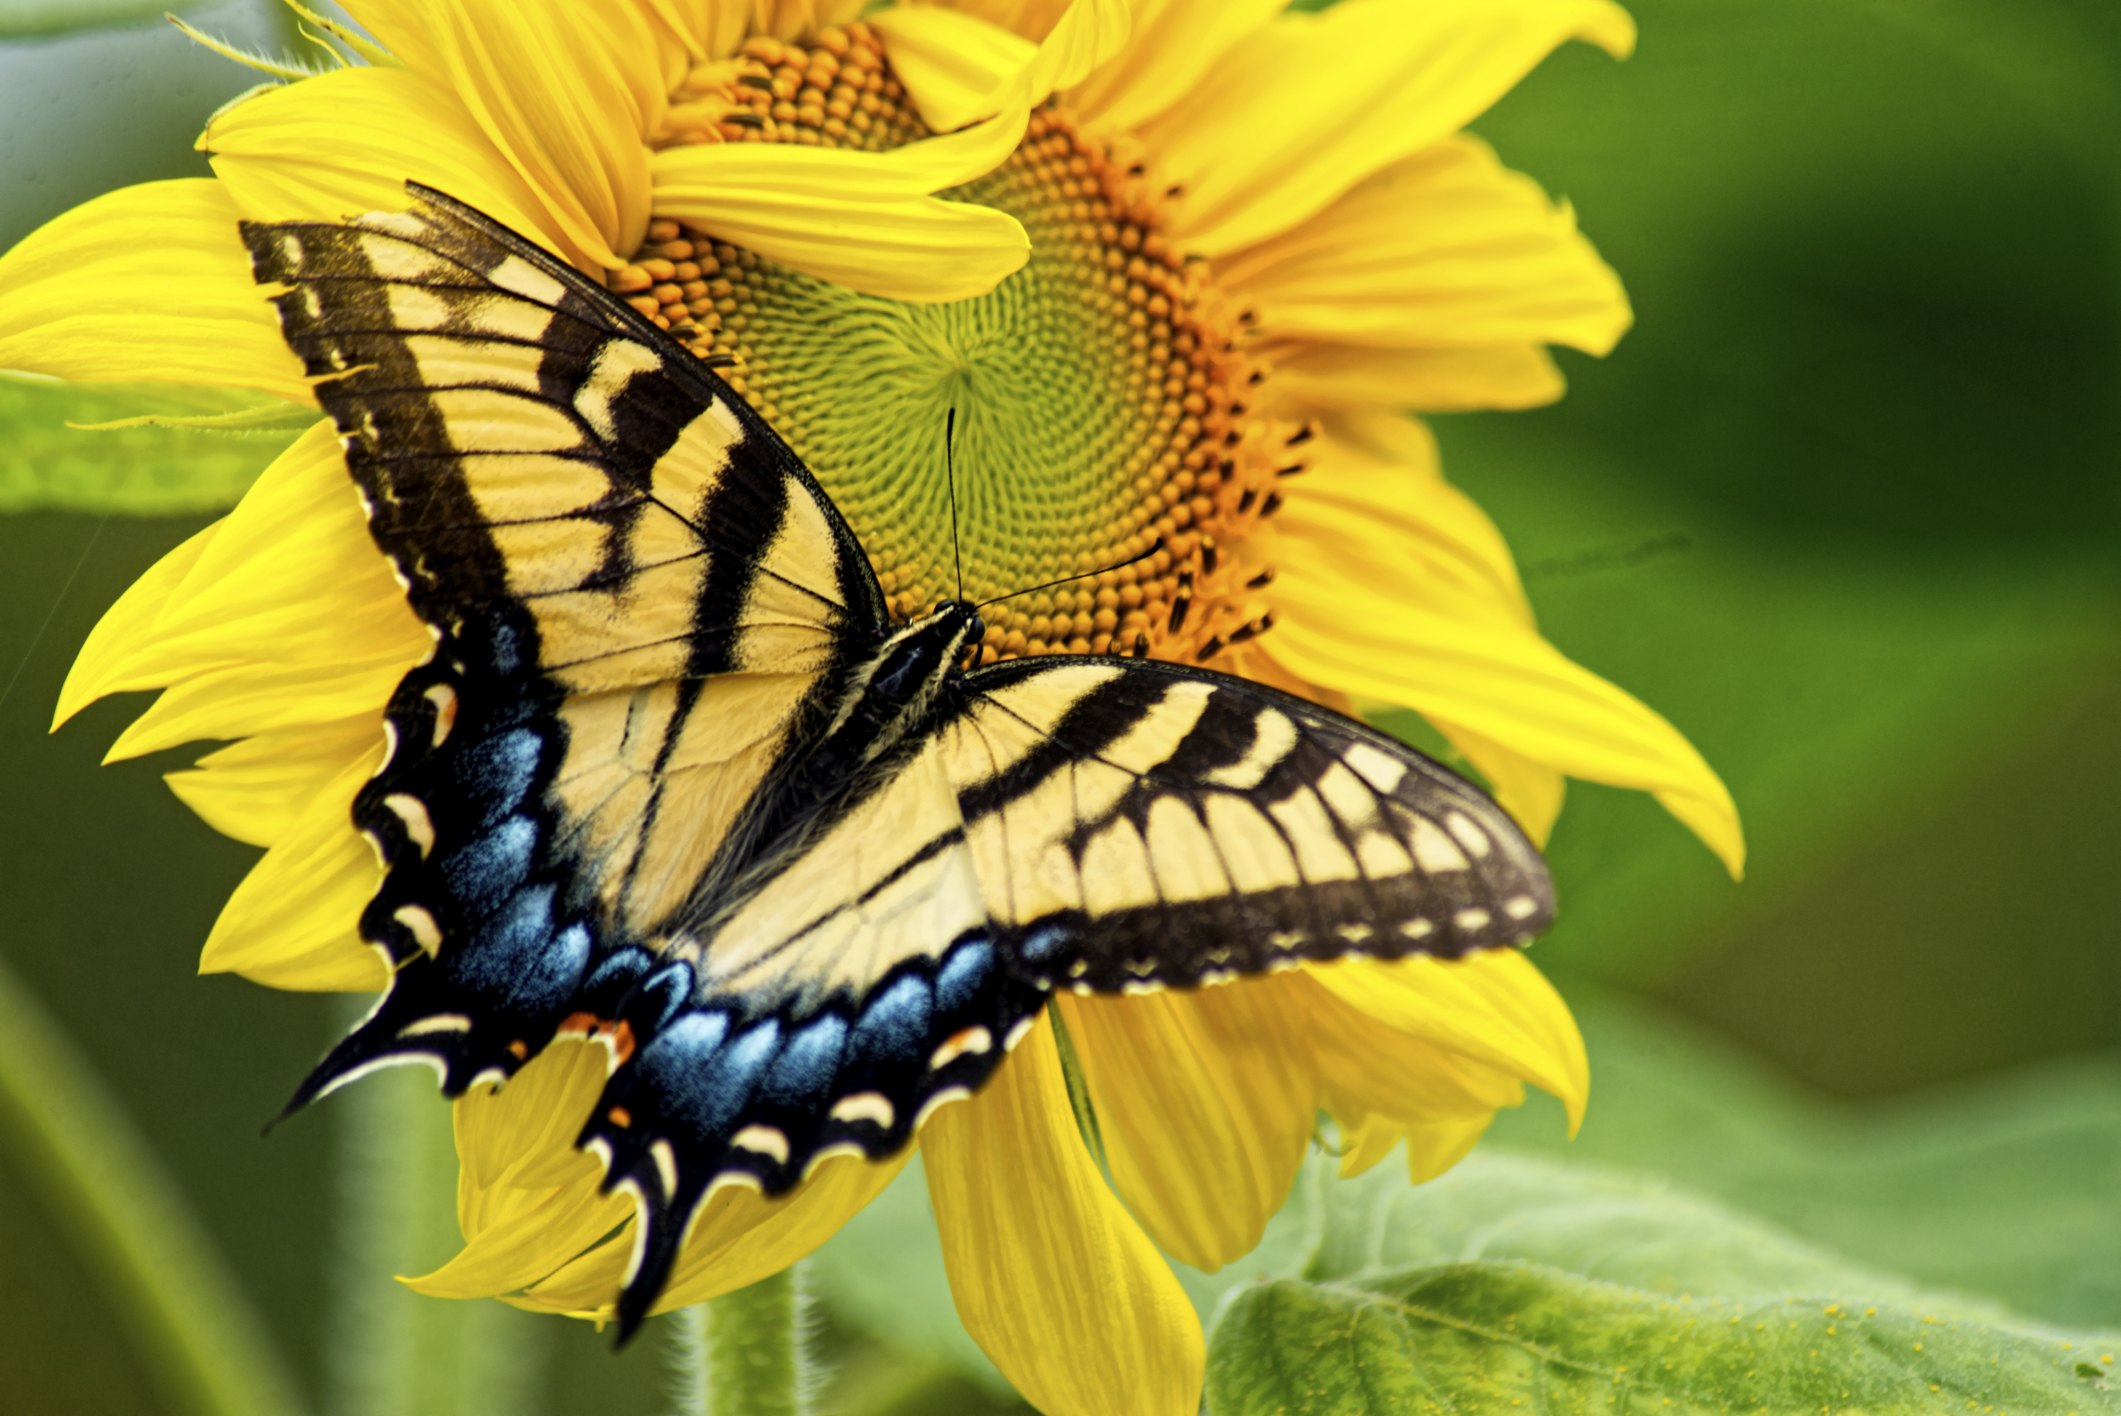 Flowers That Attract Butterflies and Hummingbirds | eHow